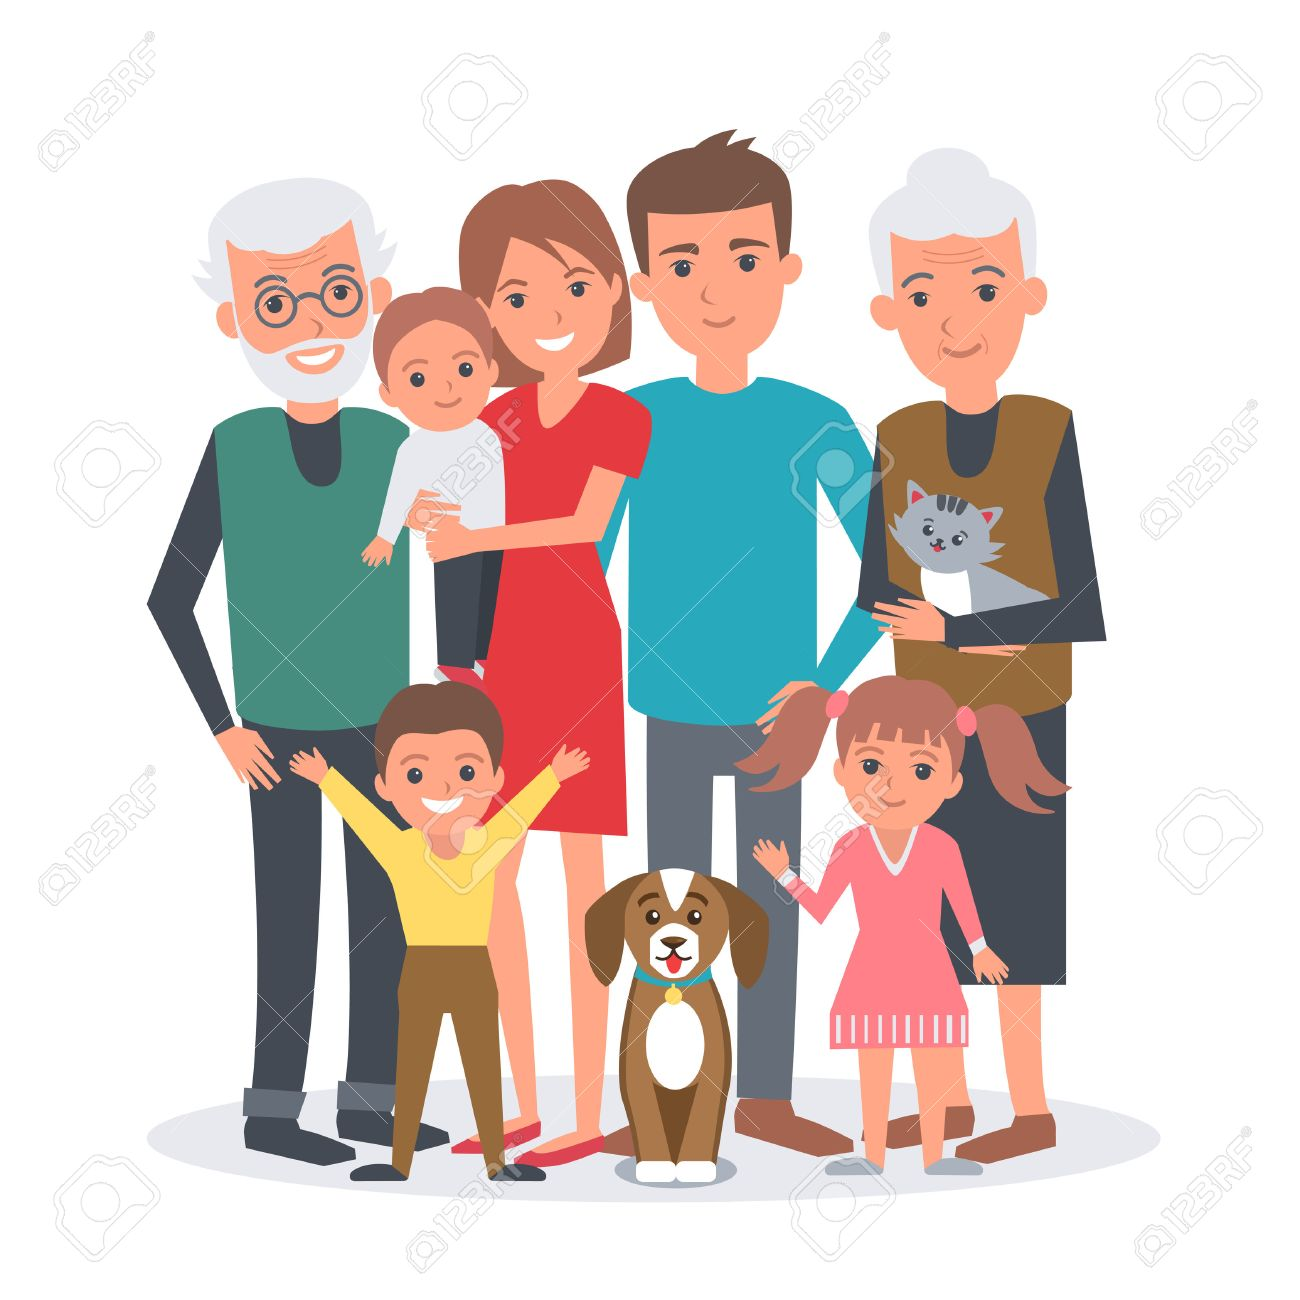 hight resolution of big family vector illustration big family with children parents grandparents and pets